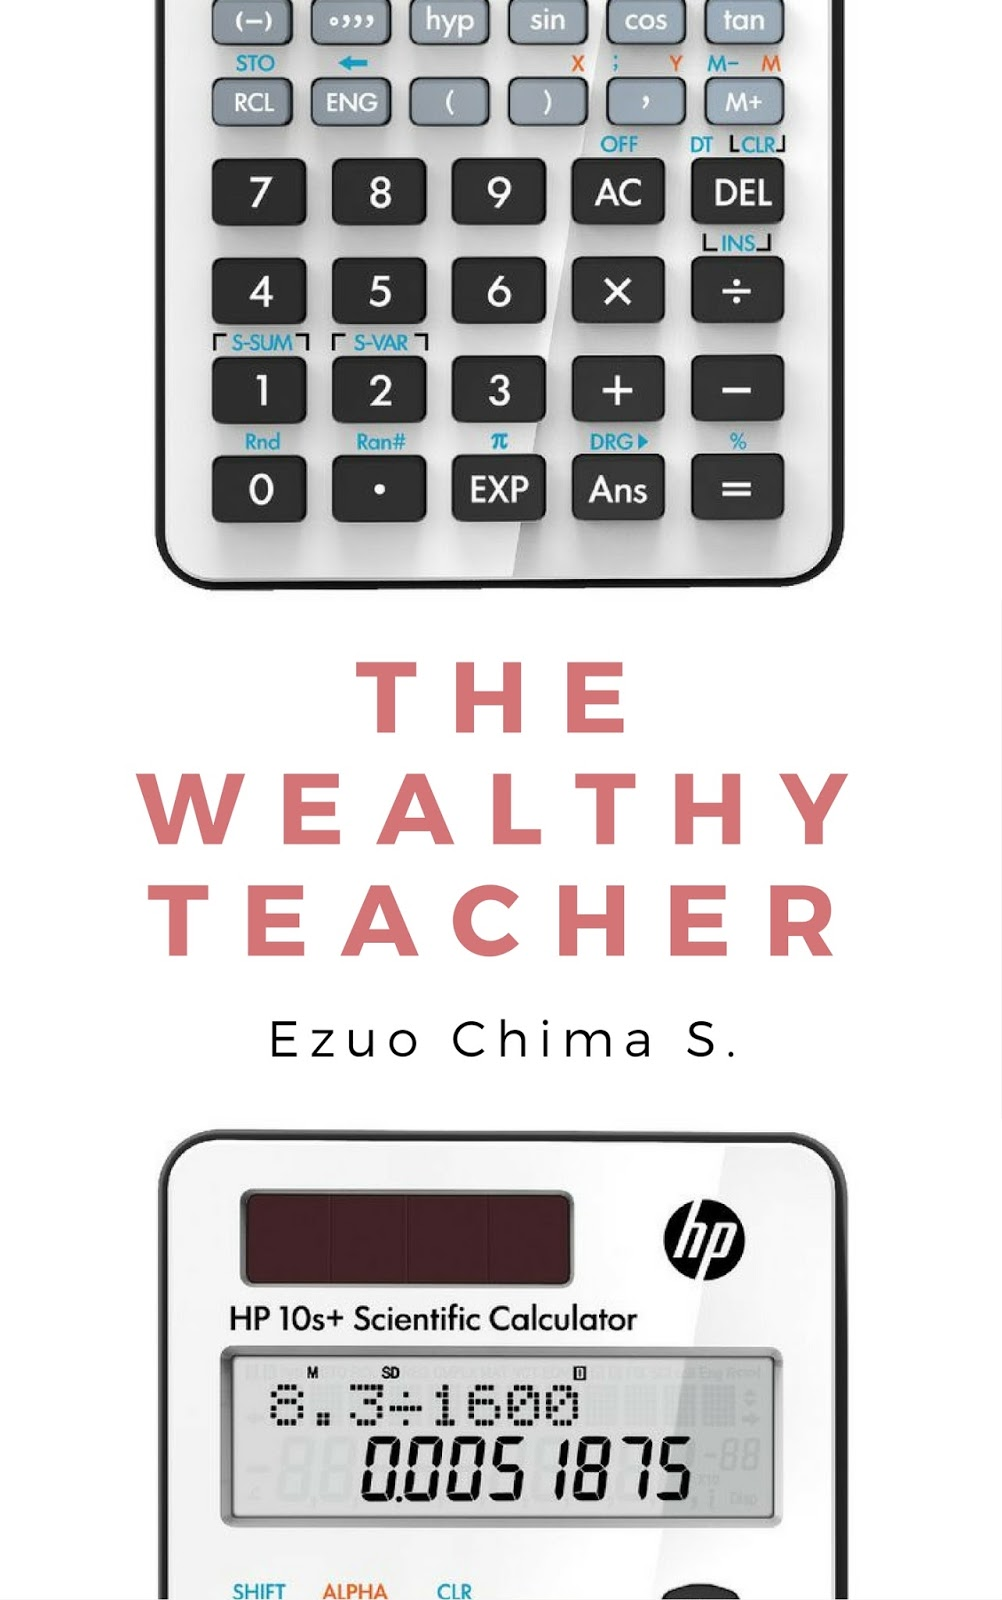 The Wealthy Teacher by Ezuo Chima S.